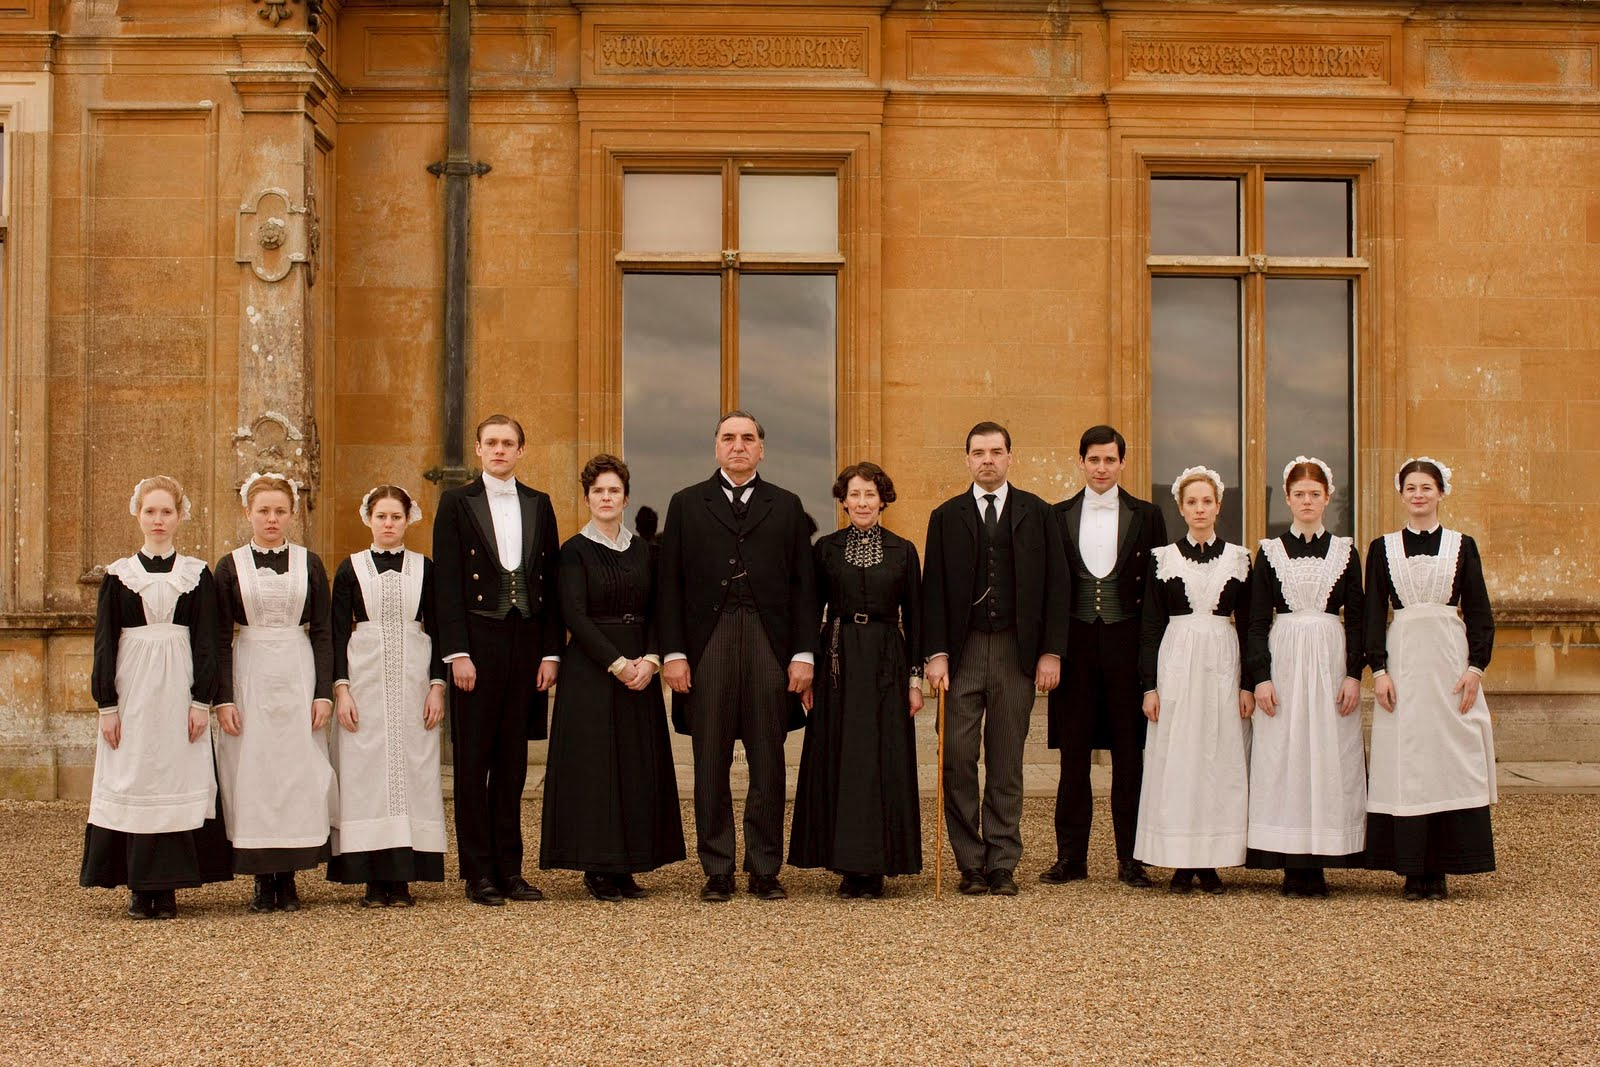 downton abbey, downton abbey edith, downton abbey mary, downton abbey sybil,hugh bonneville downton abbey,Highclere castle, Downton Abbey Highclere castle, Downton Abbey série, série downton abbey